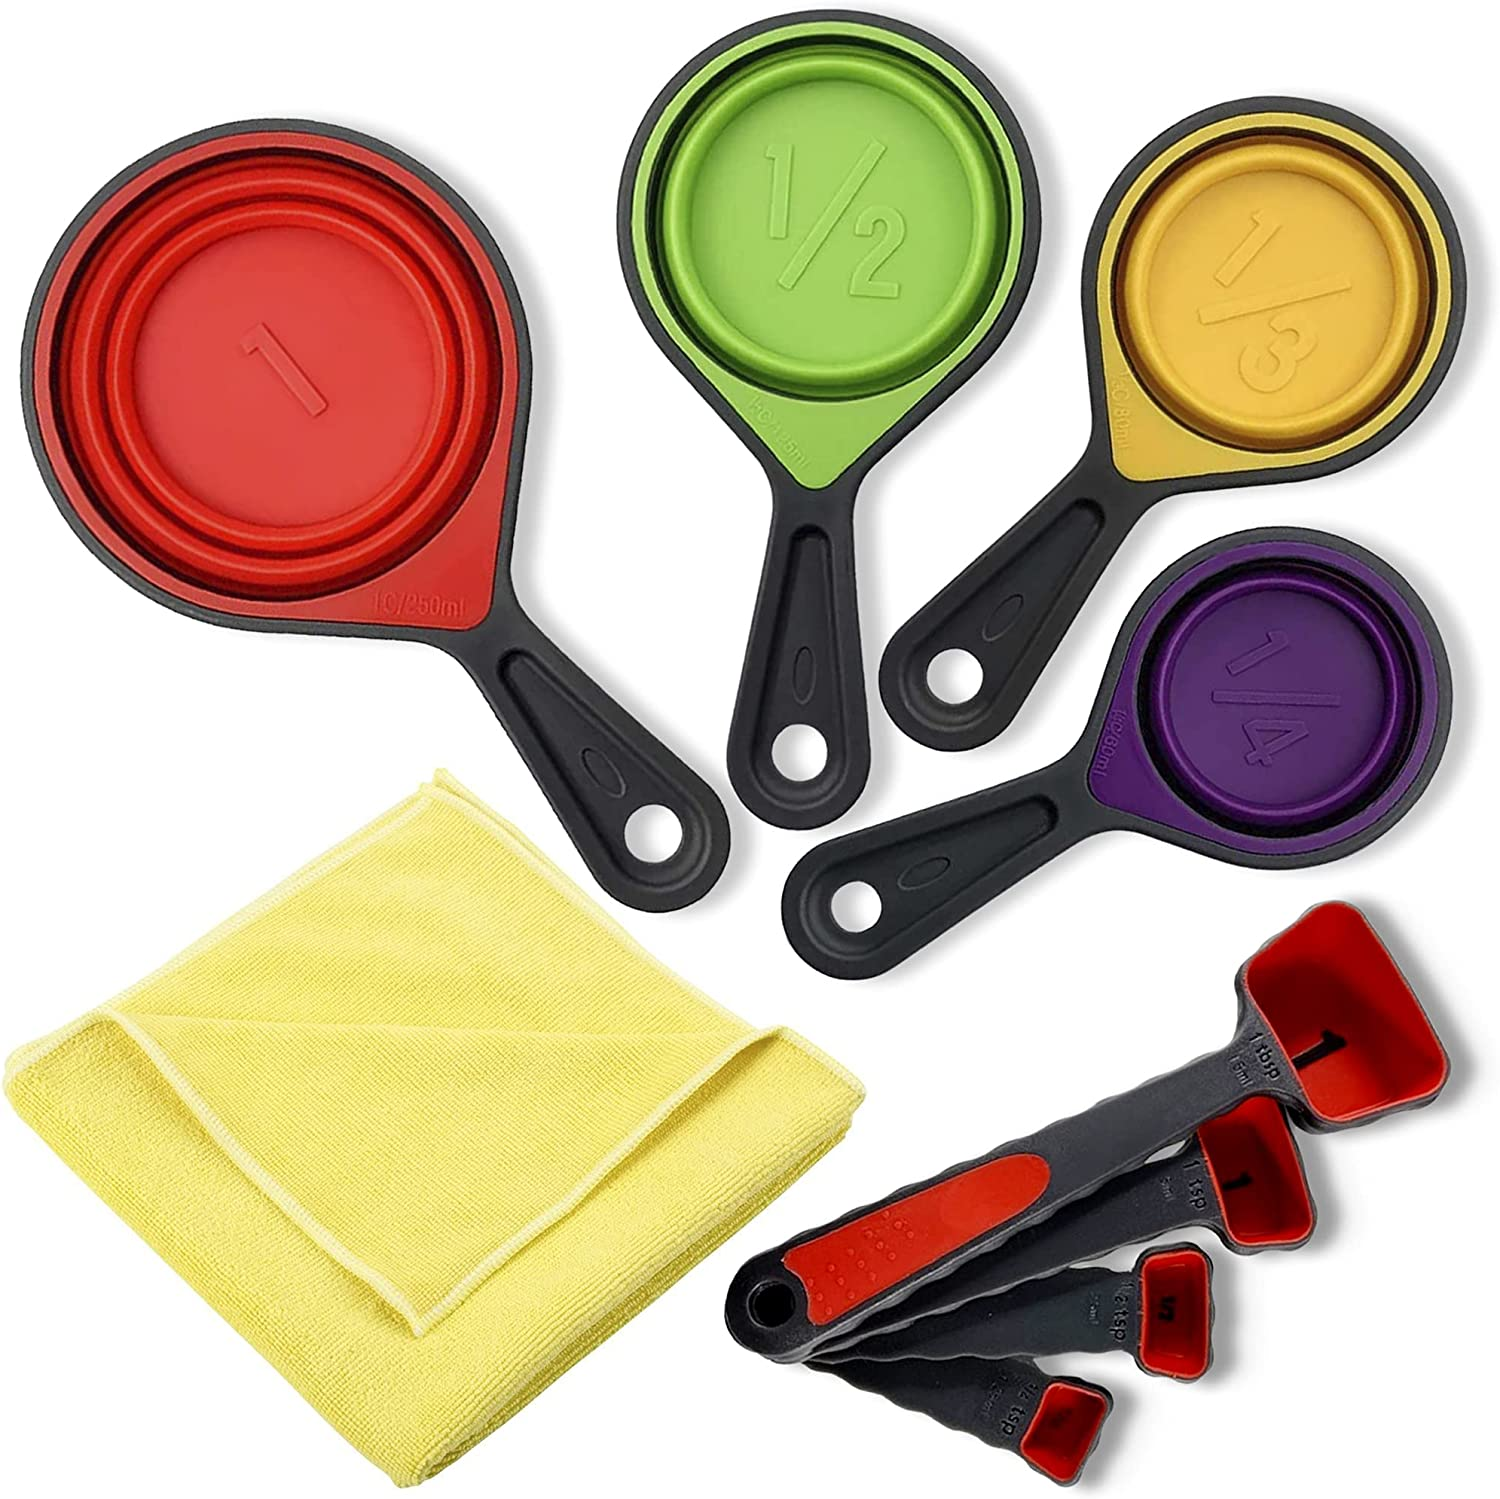 Collapsible Measuring Cups – Set of Silicone Measuring Cups with Spoons – Food-Grade Silicone Baking Utensils Set – Easy to Store and Dishwasher Safe – Measure Cups for Liquid and Dry Food